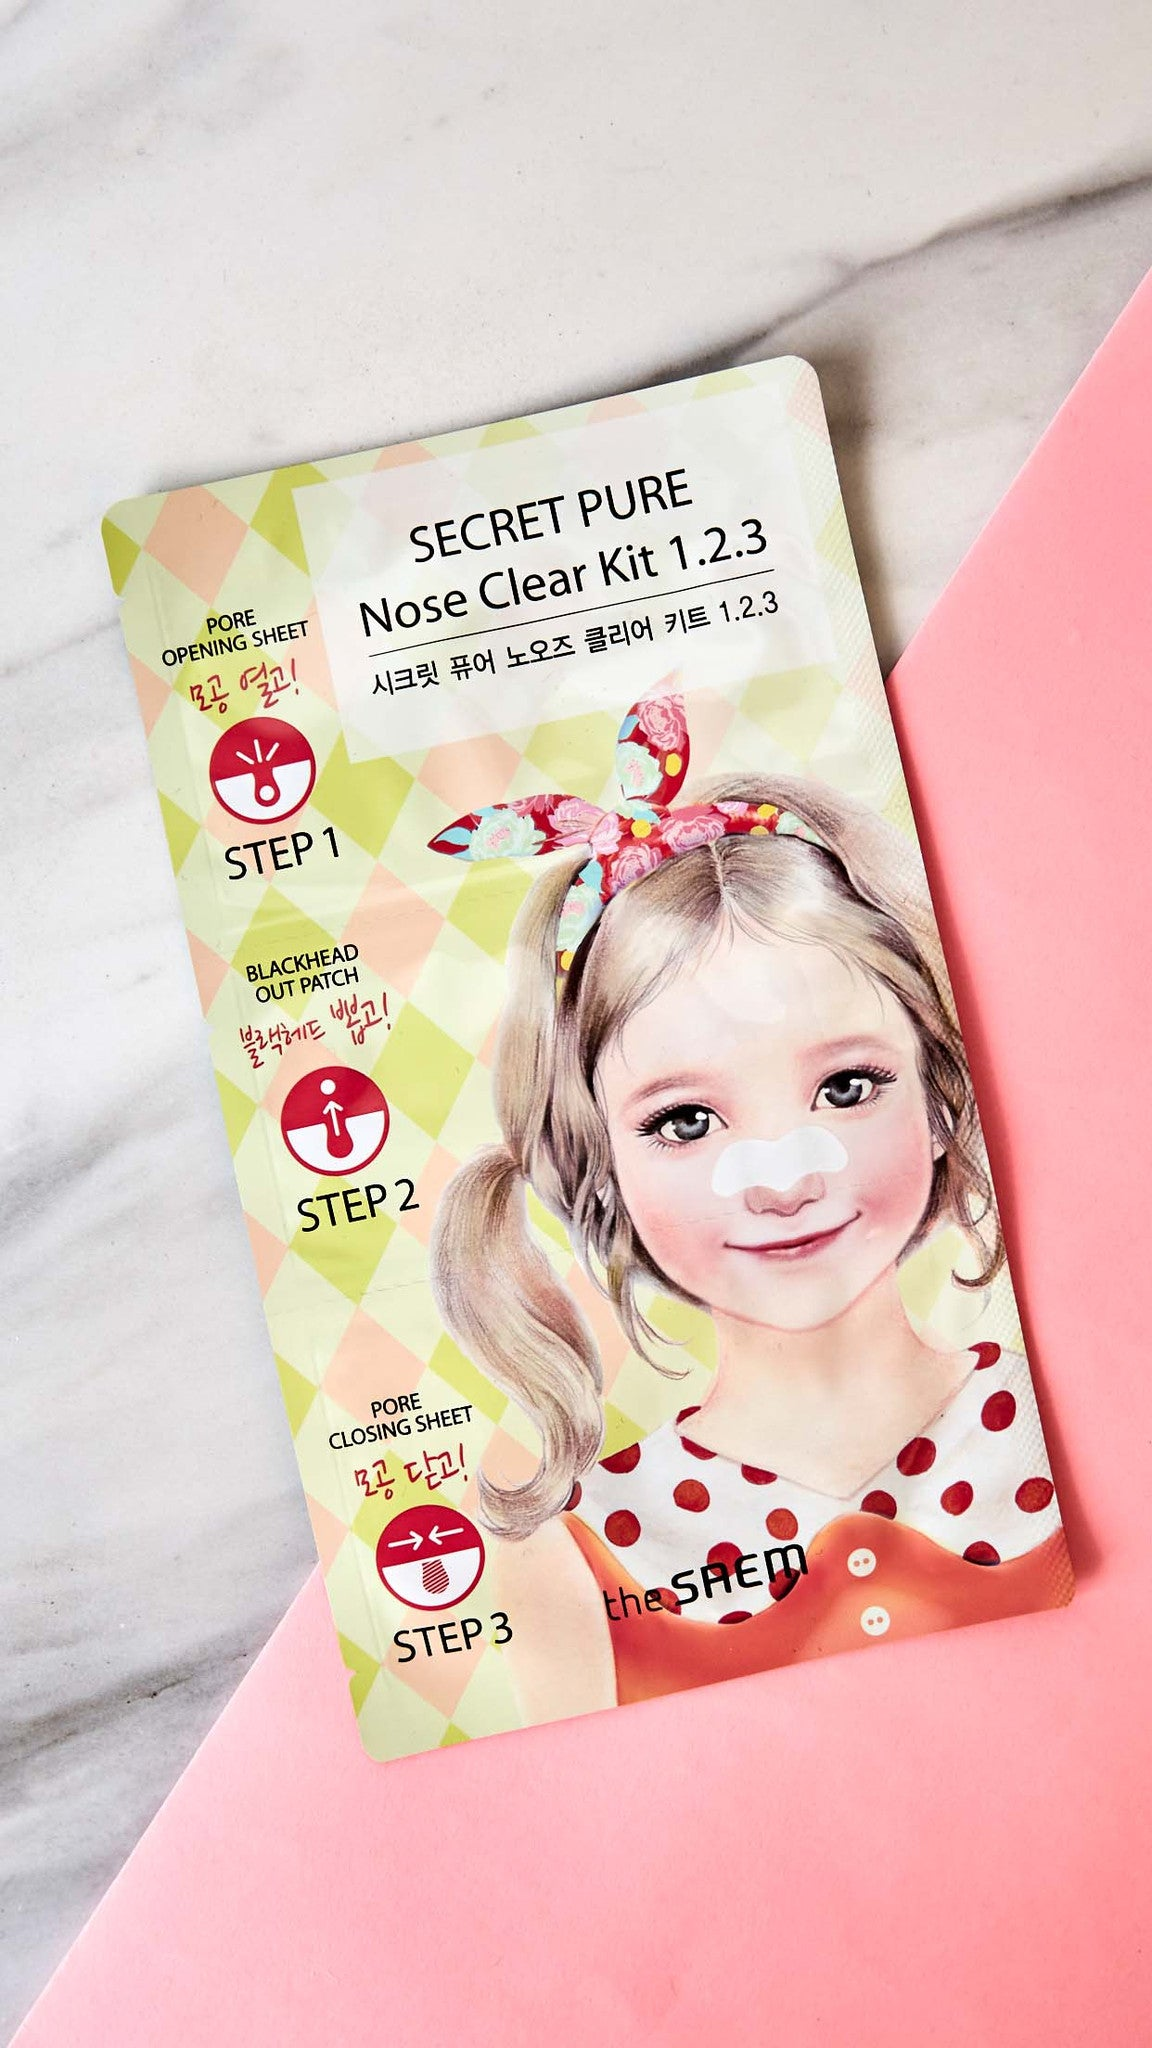 Nose Clear Kit 1.2.3